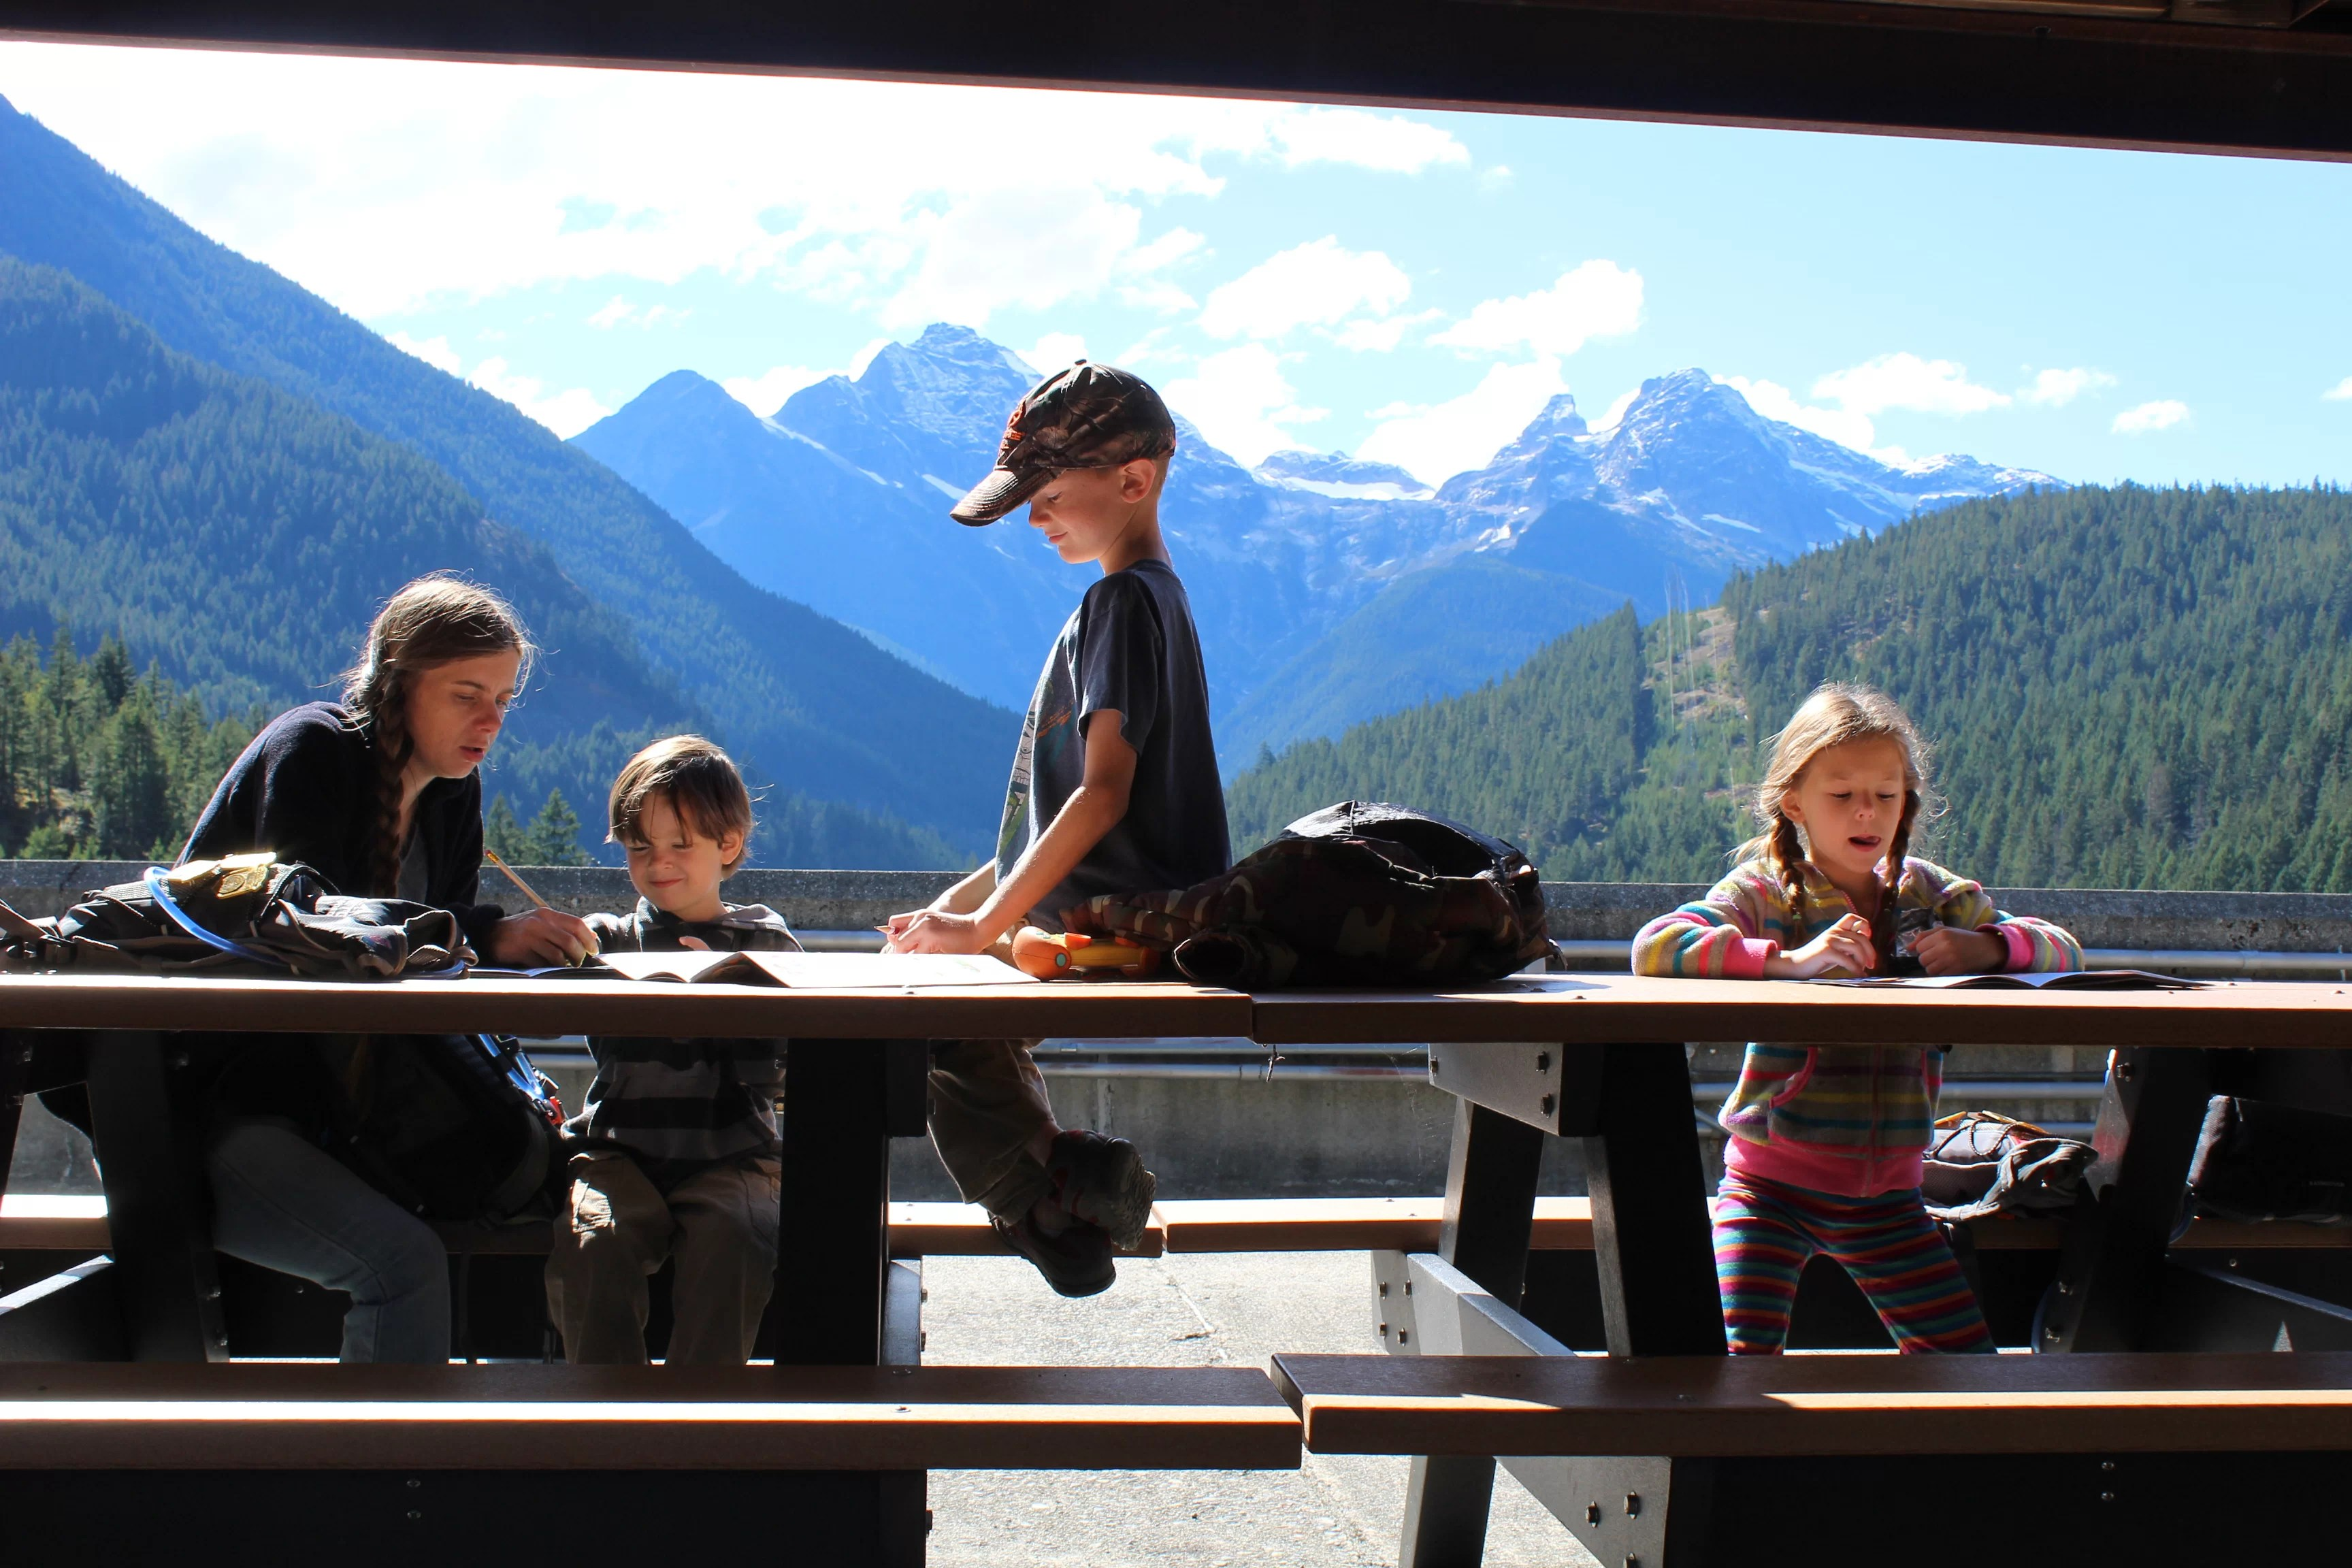 Tips on Visiting National Parks with your Family